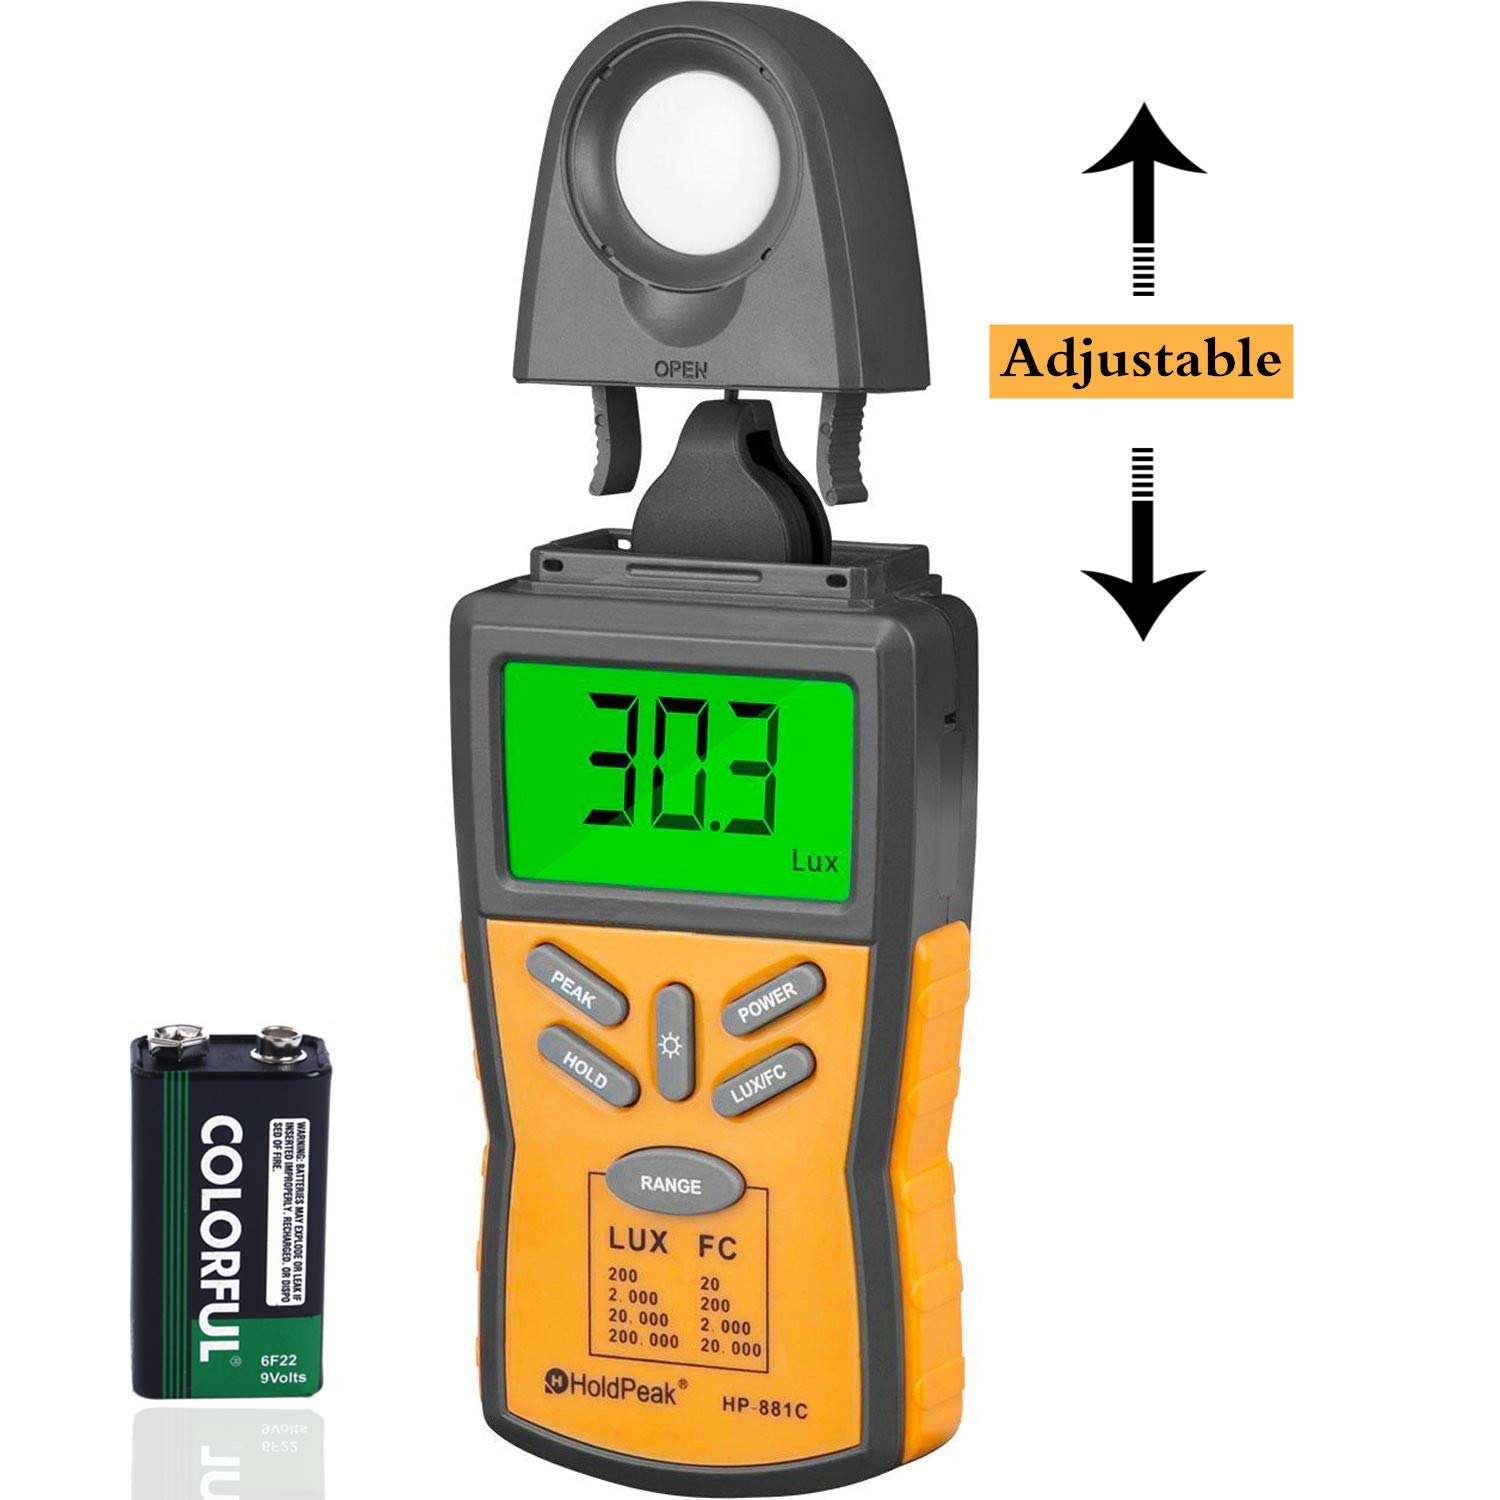 HOLDPEAK 881C Digital Light Meter,Lux Light Meter with Peak Hold, Lux/FC Unit, Data Hold and LCD Display,Range 0.1-200,000 Lux, 0.01-20,000 FC with Backlight for Plants and LED Lights by H HOLDPEAK